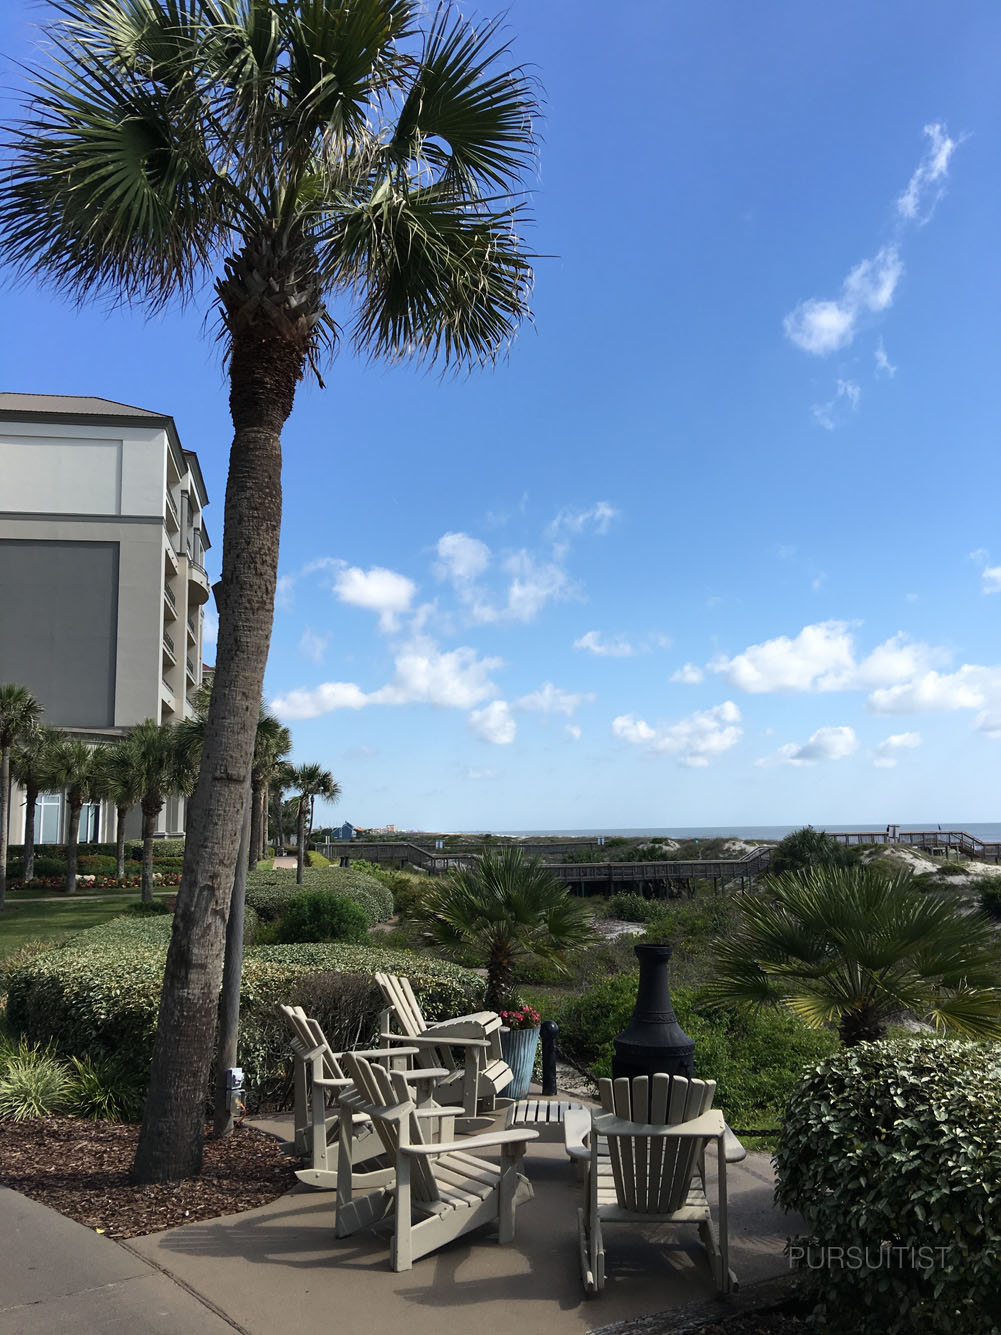 Ritz-Carlton, Amelia Island Pursuitist22